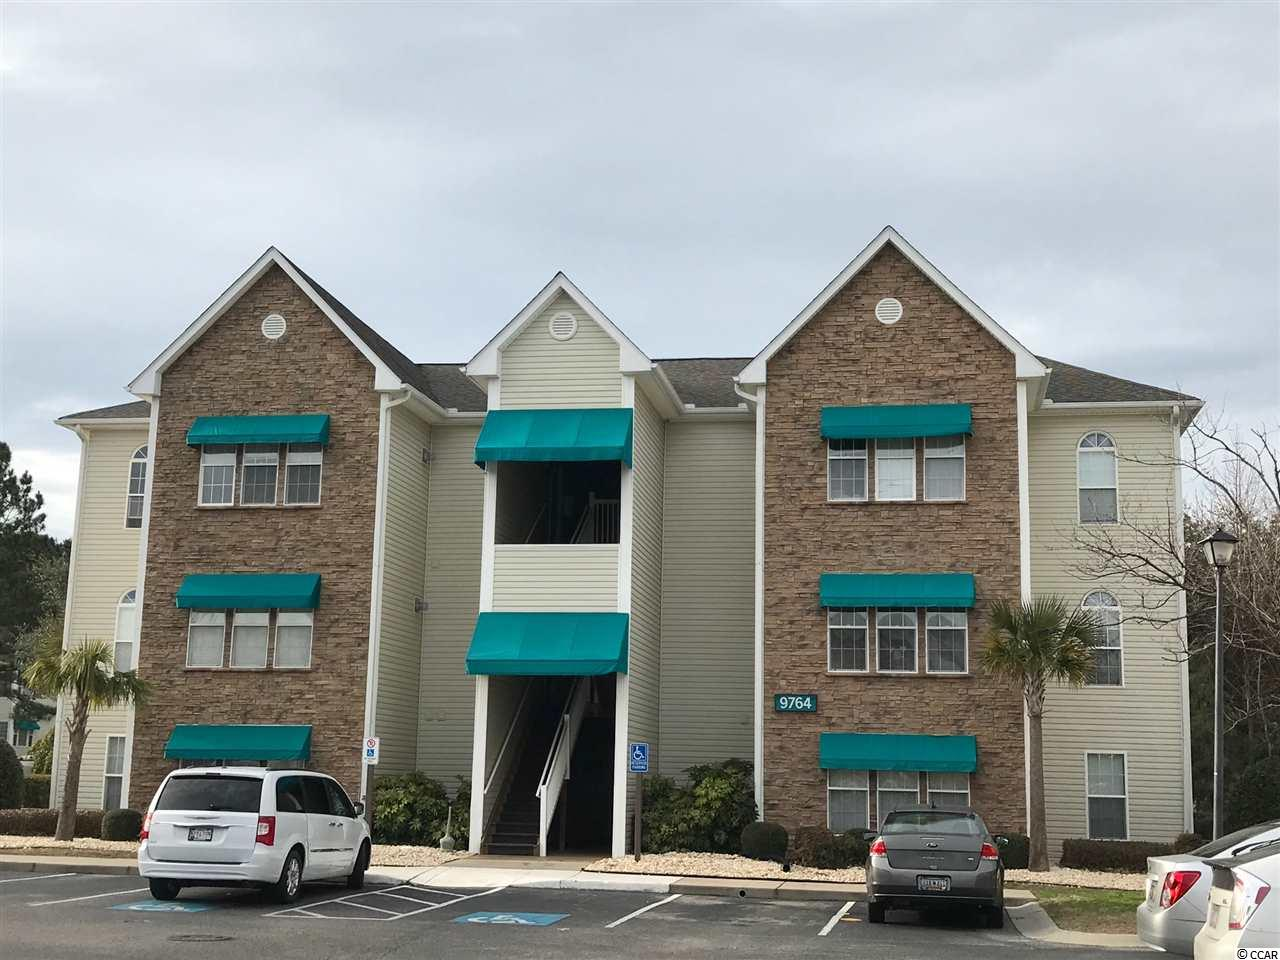 This is your condo! Adorable property with stainless appliances! Don't miss the opportunity to view this fantastic condo at the desirable gated Savannah Shores. Community has beautiful pool area with fountain, eating area, volley ball court, tennis court and Putt Putt course...Amazing. Beach living at it's finest! Condo is an end units with a Carolina room, with lots of light and very nice finishes throughout!